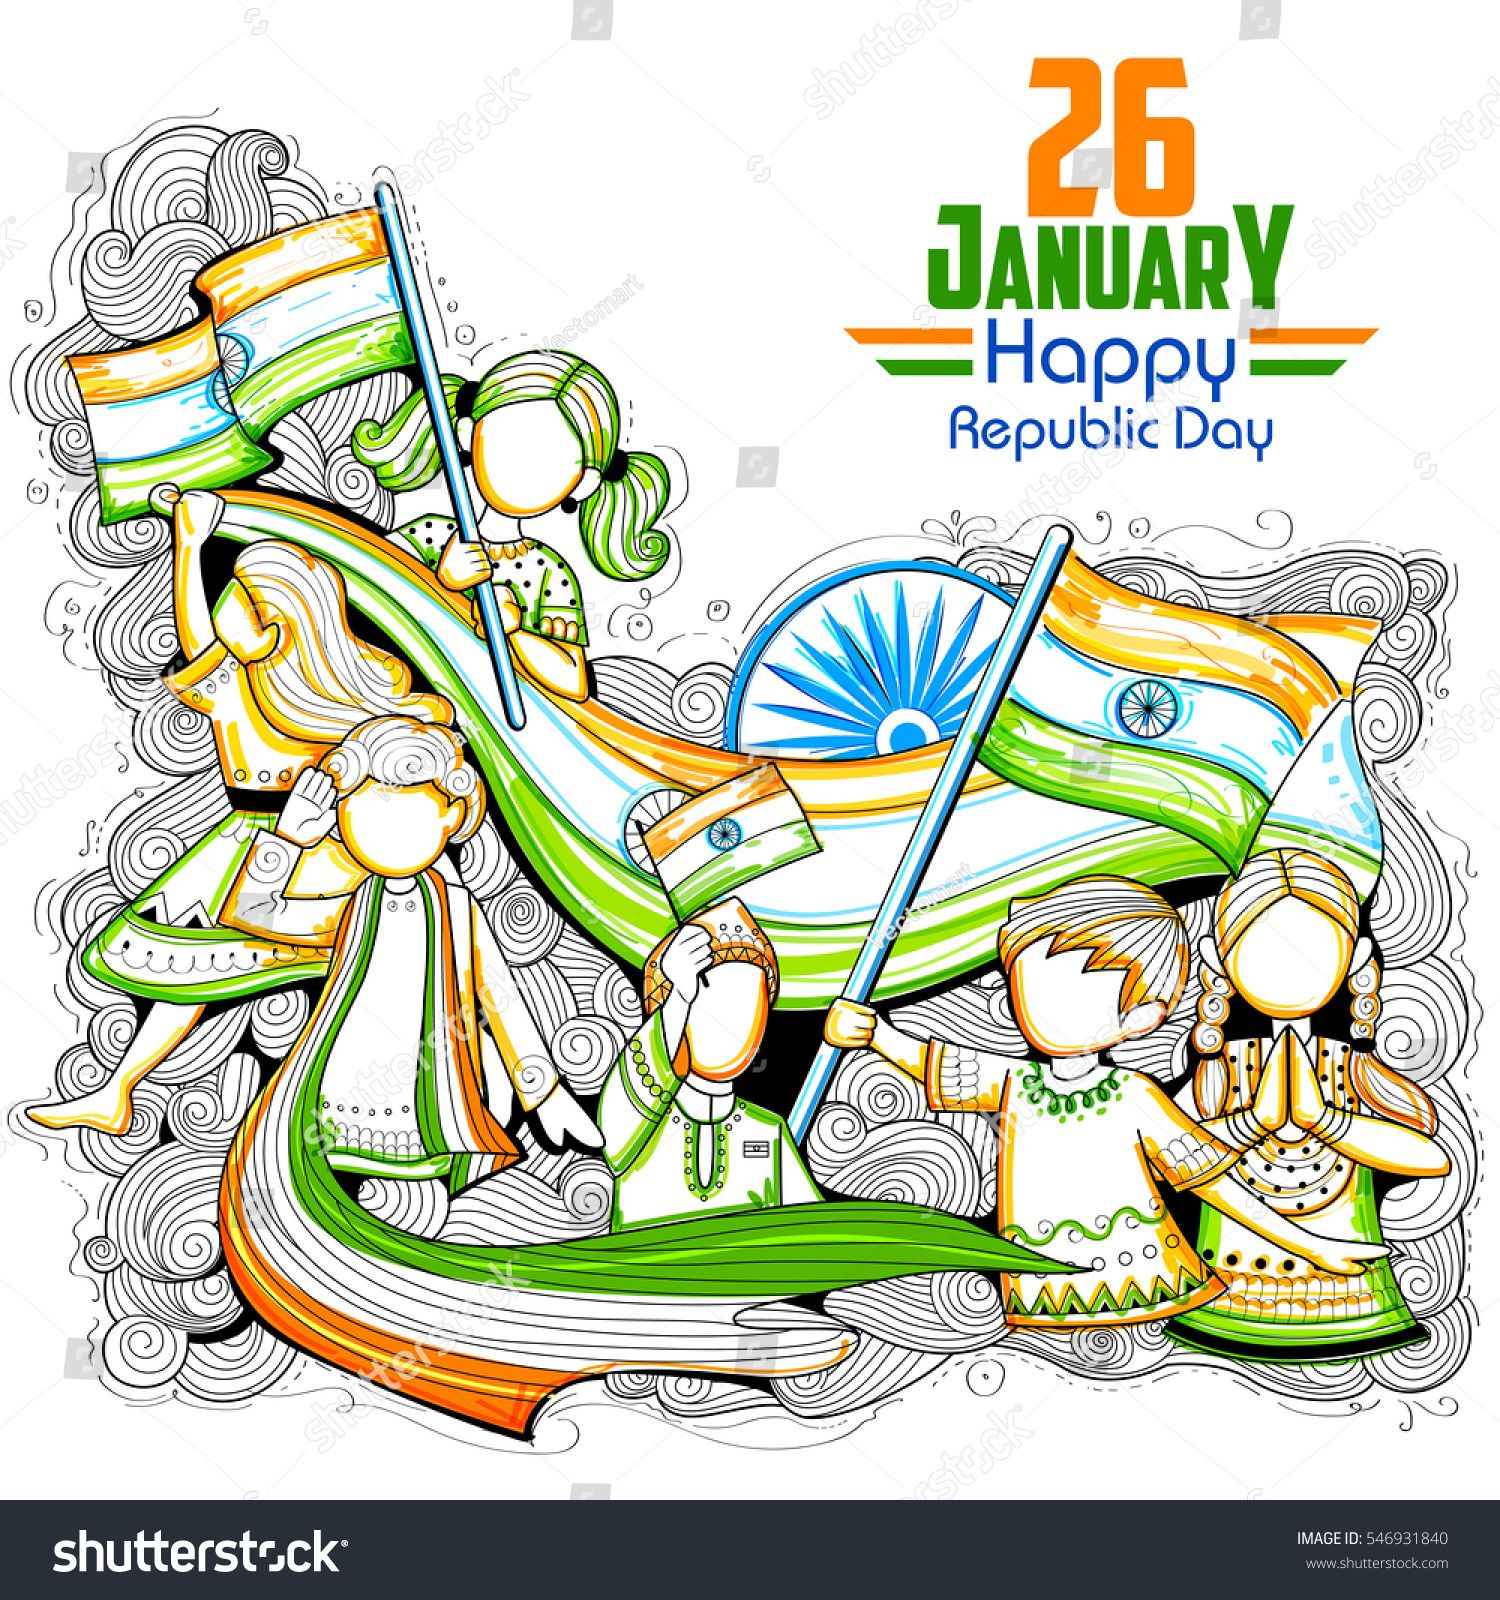 Illustration Of Indian Kids Waving Tricolor Flag Celebrating Republic Day Of India Republic Day Photos Independence Day Drawing Republic Day India